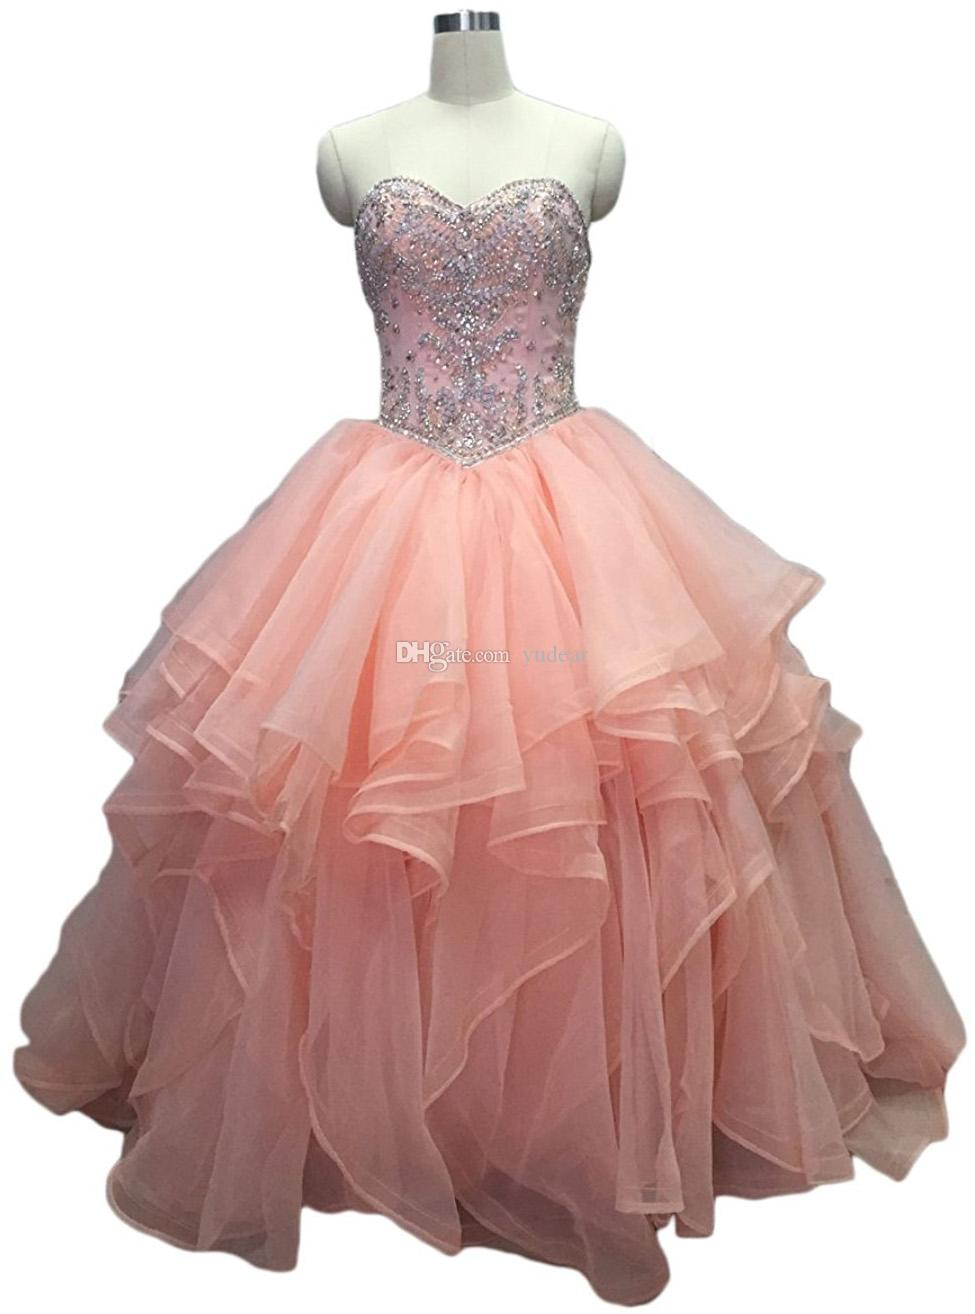 New Design 2018 Sweetheart Women Prom Dresses Sleeveless Ball Gown  Quinceanera Dresses Charming Tulle Ruffles Lace Up Chic Vestido De Fiesta  Beautiful Prom ... a0d4d127dbf2